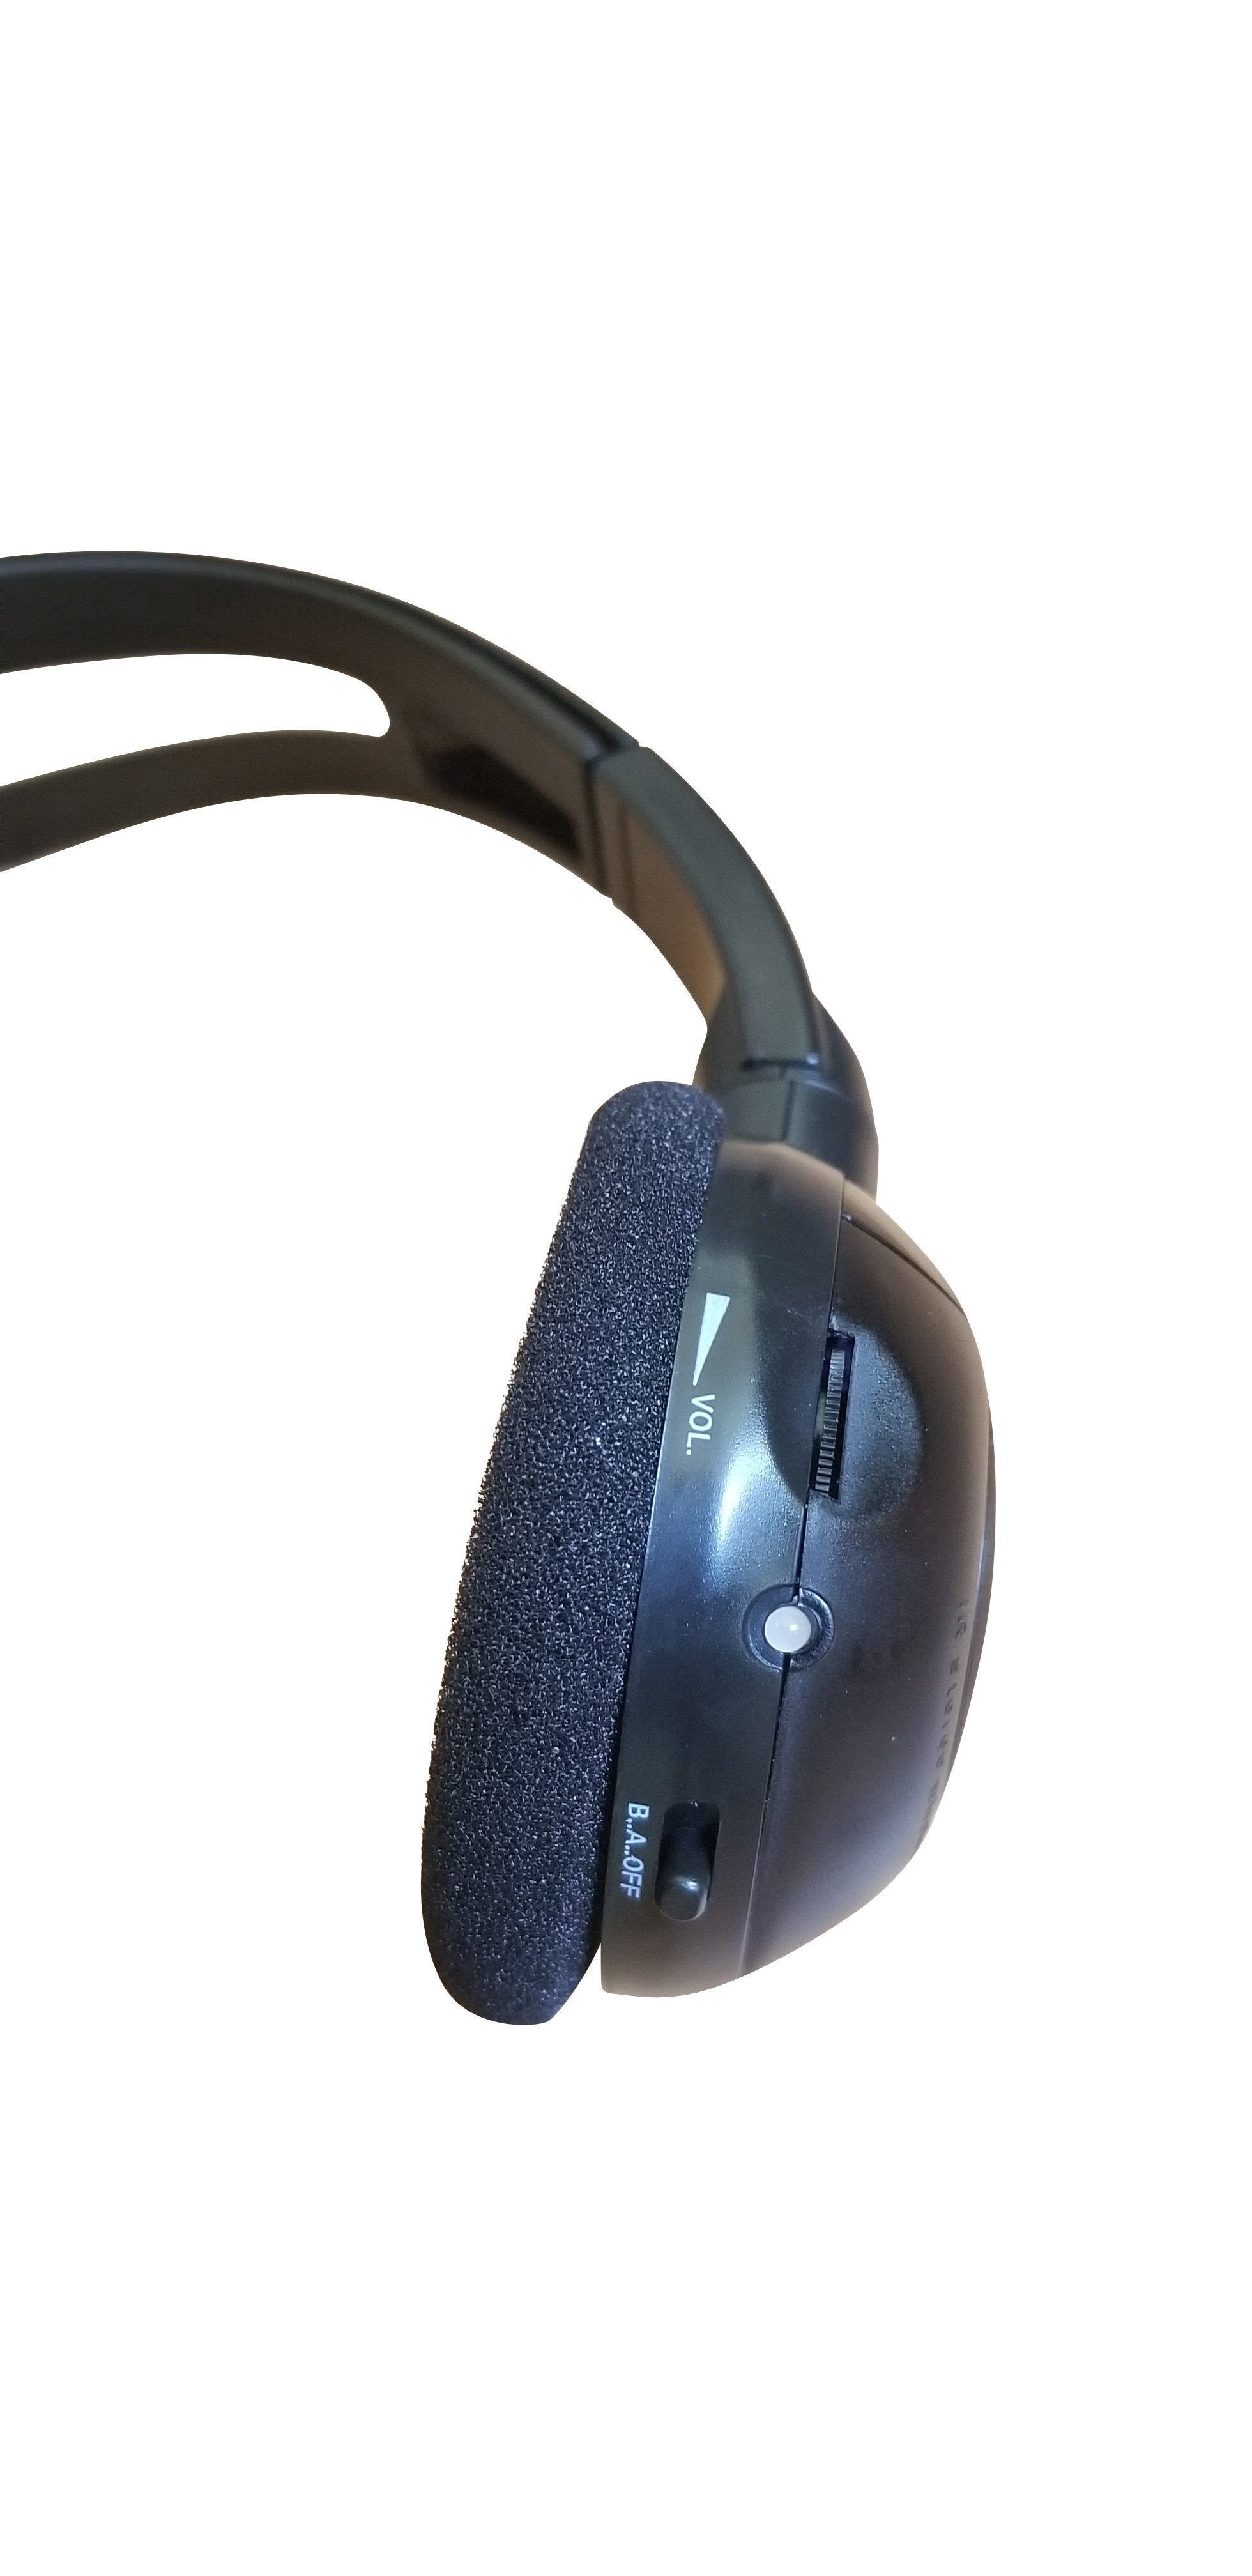 2014 Honda CRV Wireless DVD Headphone